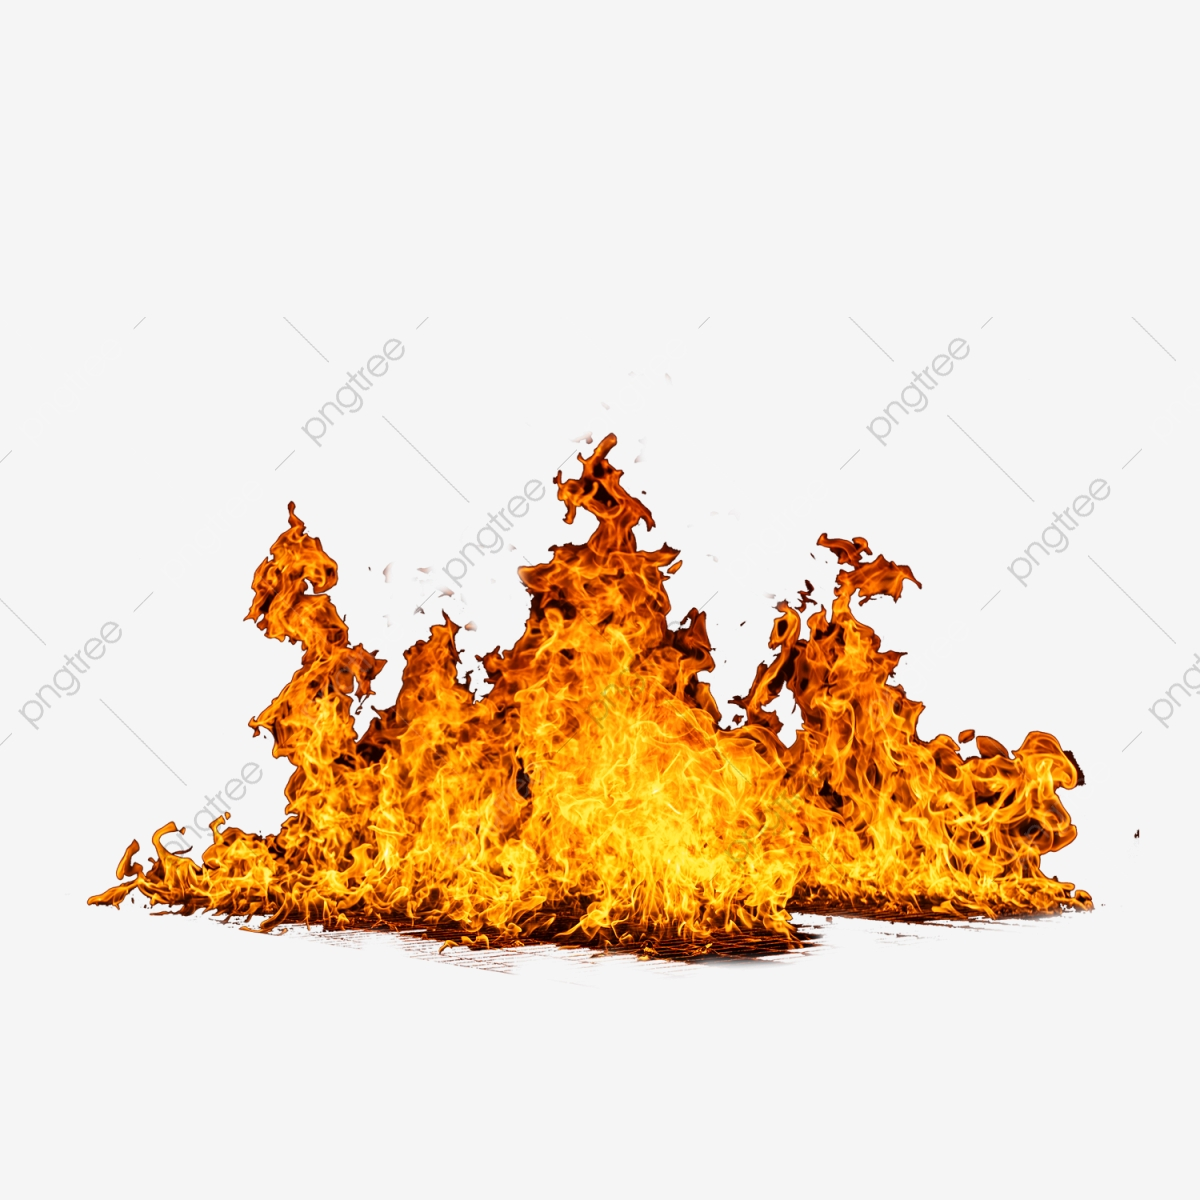 hight resolution of commercial use resource upgrade to premium plan and get license authorization upgradenow dark burning fire clipart